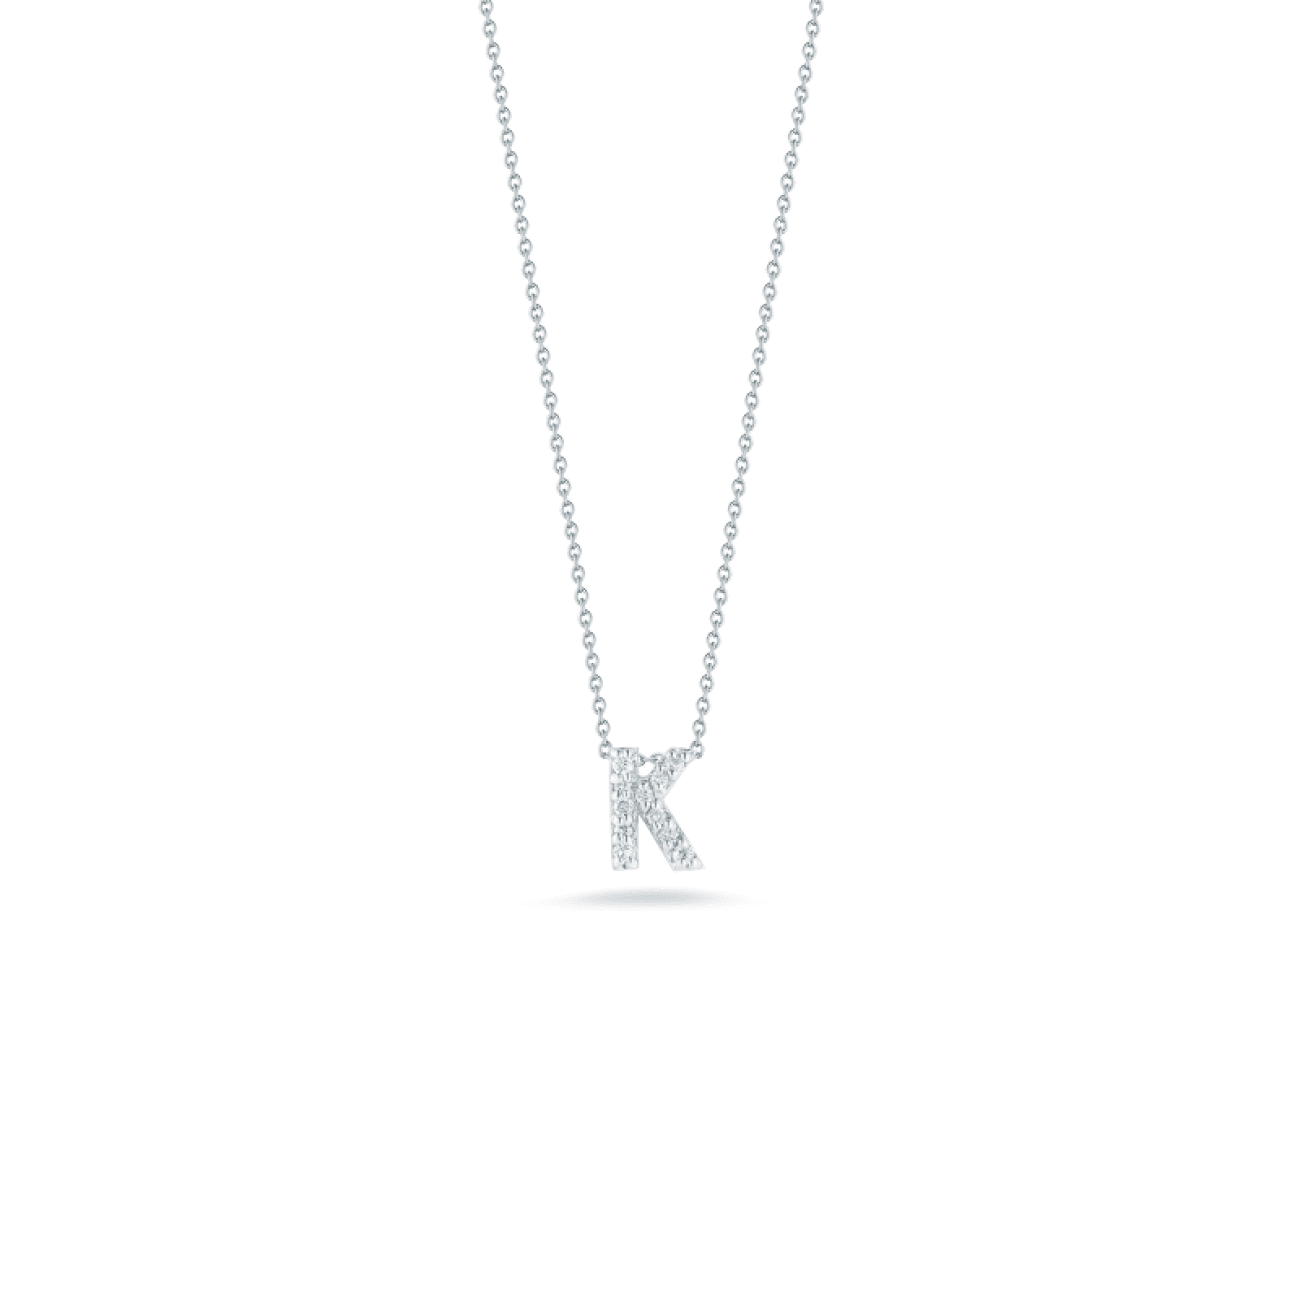 Roberto Coin Jewelry - 18kt Gold Love Letter K Pendant with Diamonds 001634awchxk | Manfredi Jewels